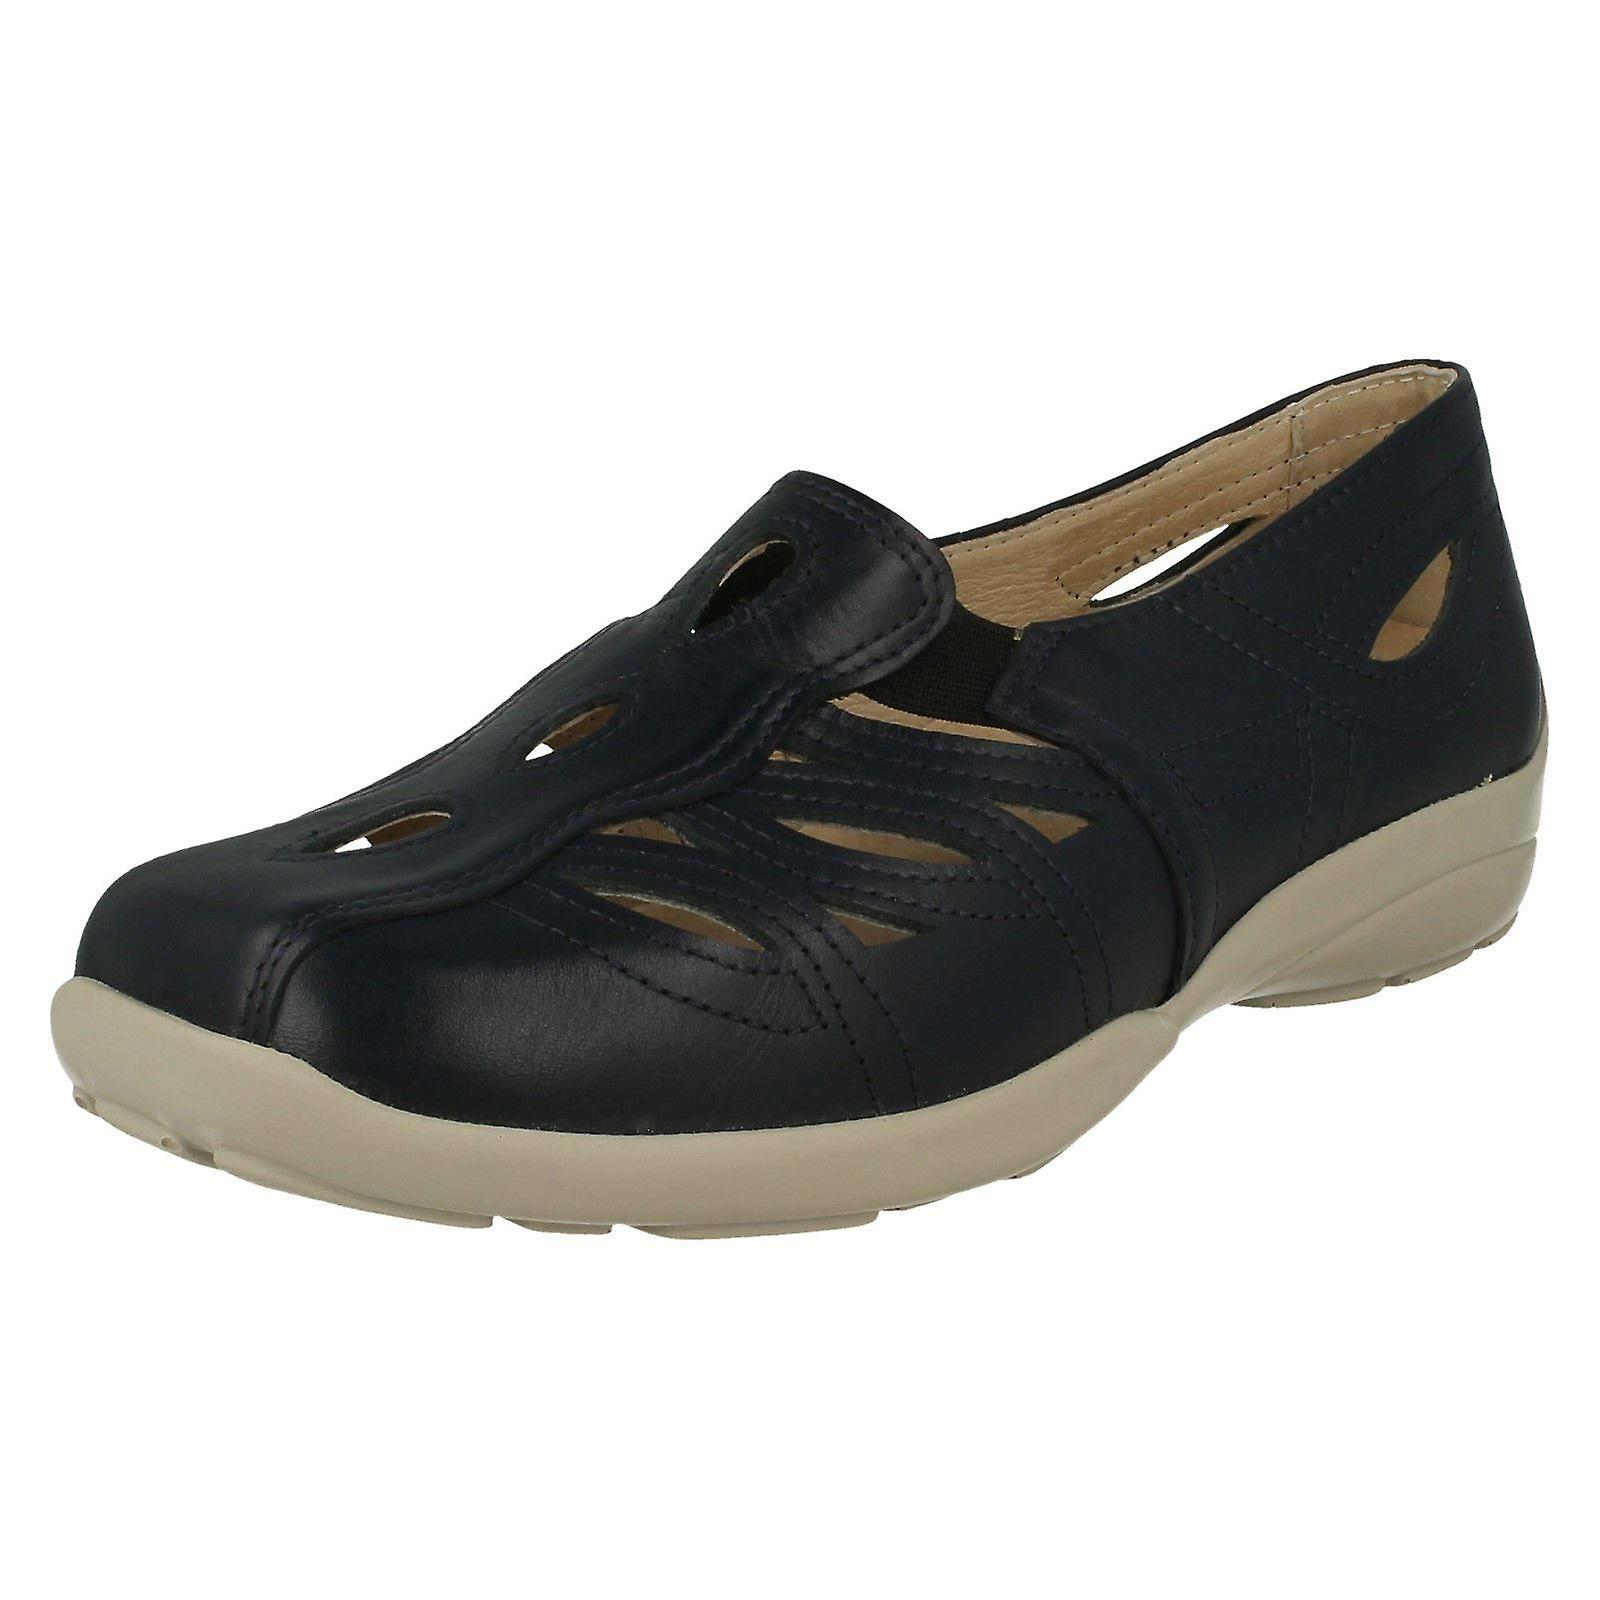 Ladies Easy B Slip On Casual Shoes Fran - Navy Leather - UK Size 5 EE/4E - EU Size 37.5 - US Size 7